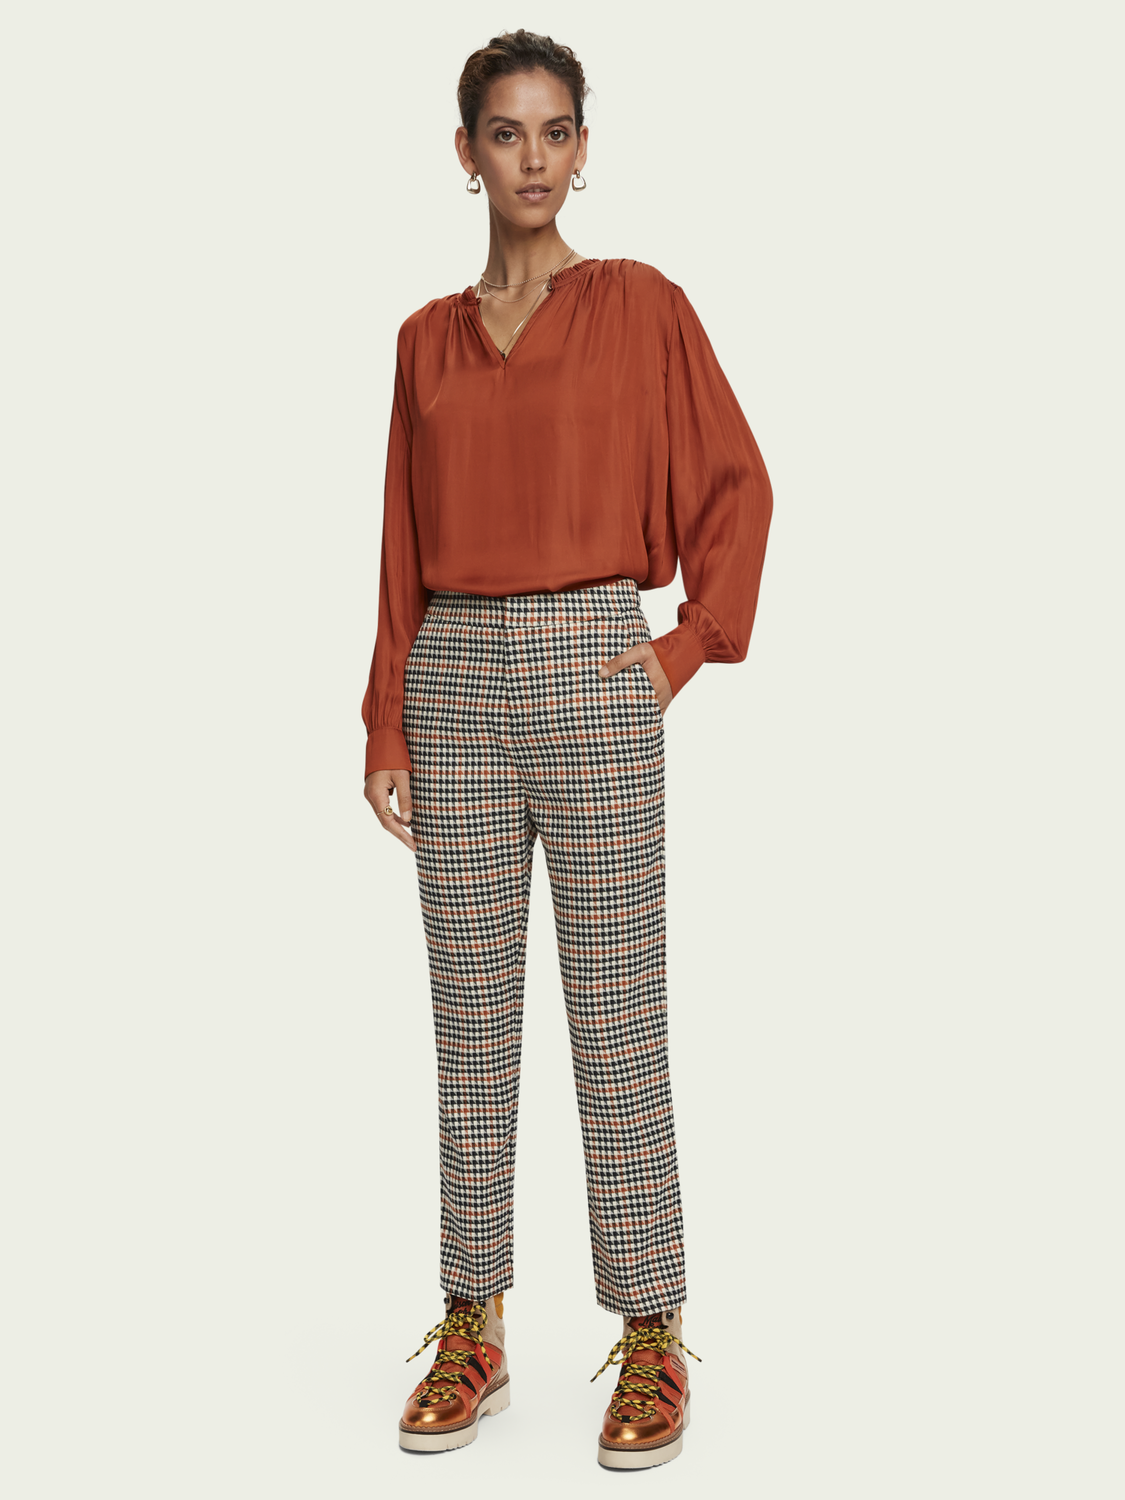 Women High waist houndstooth checked straight leg pants